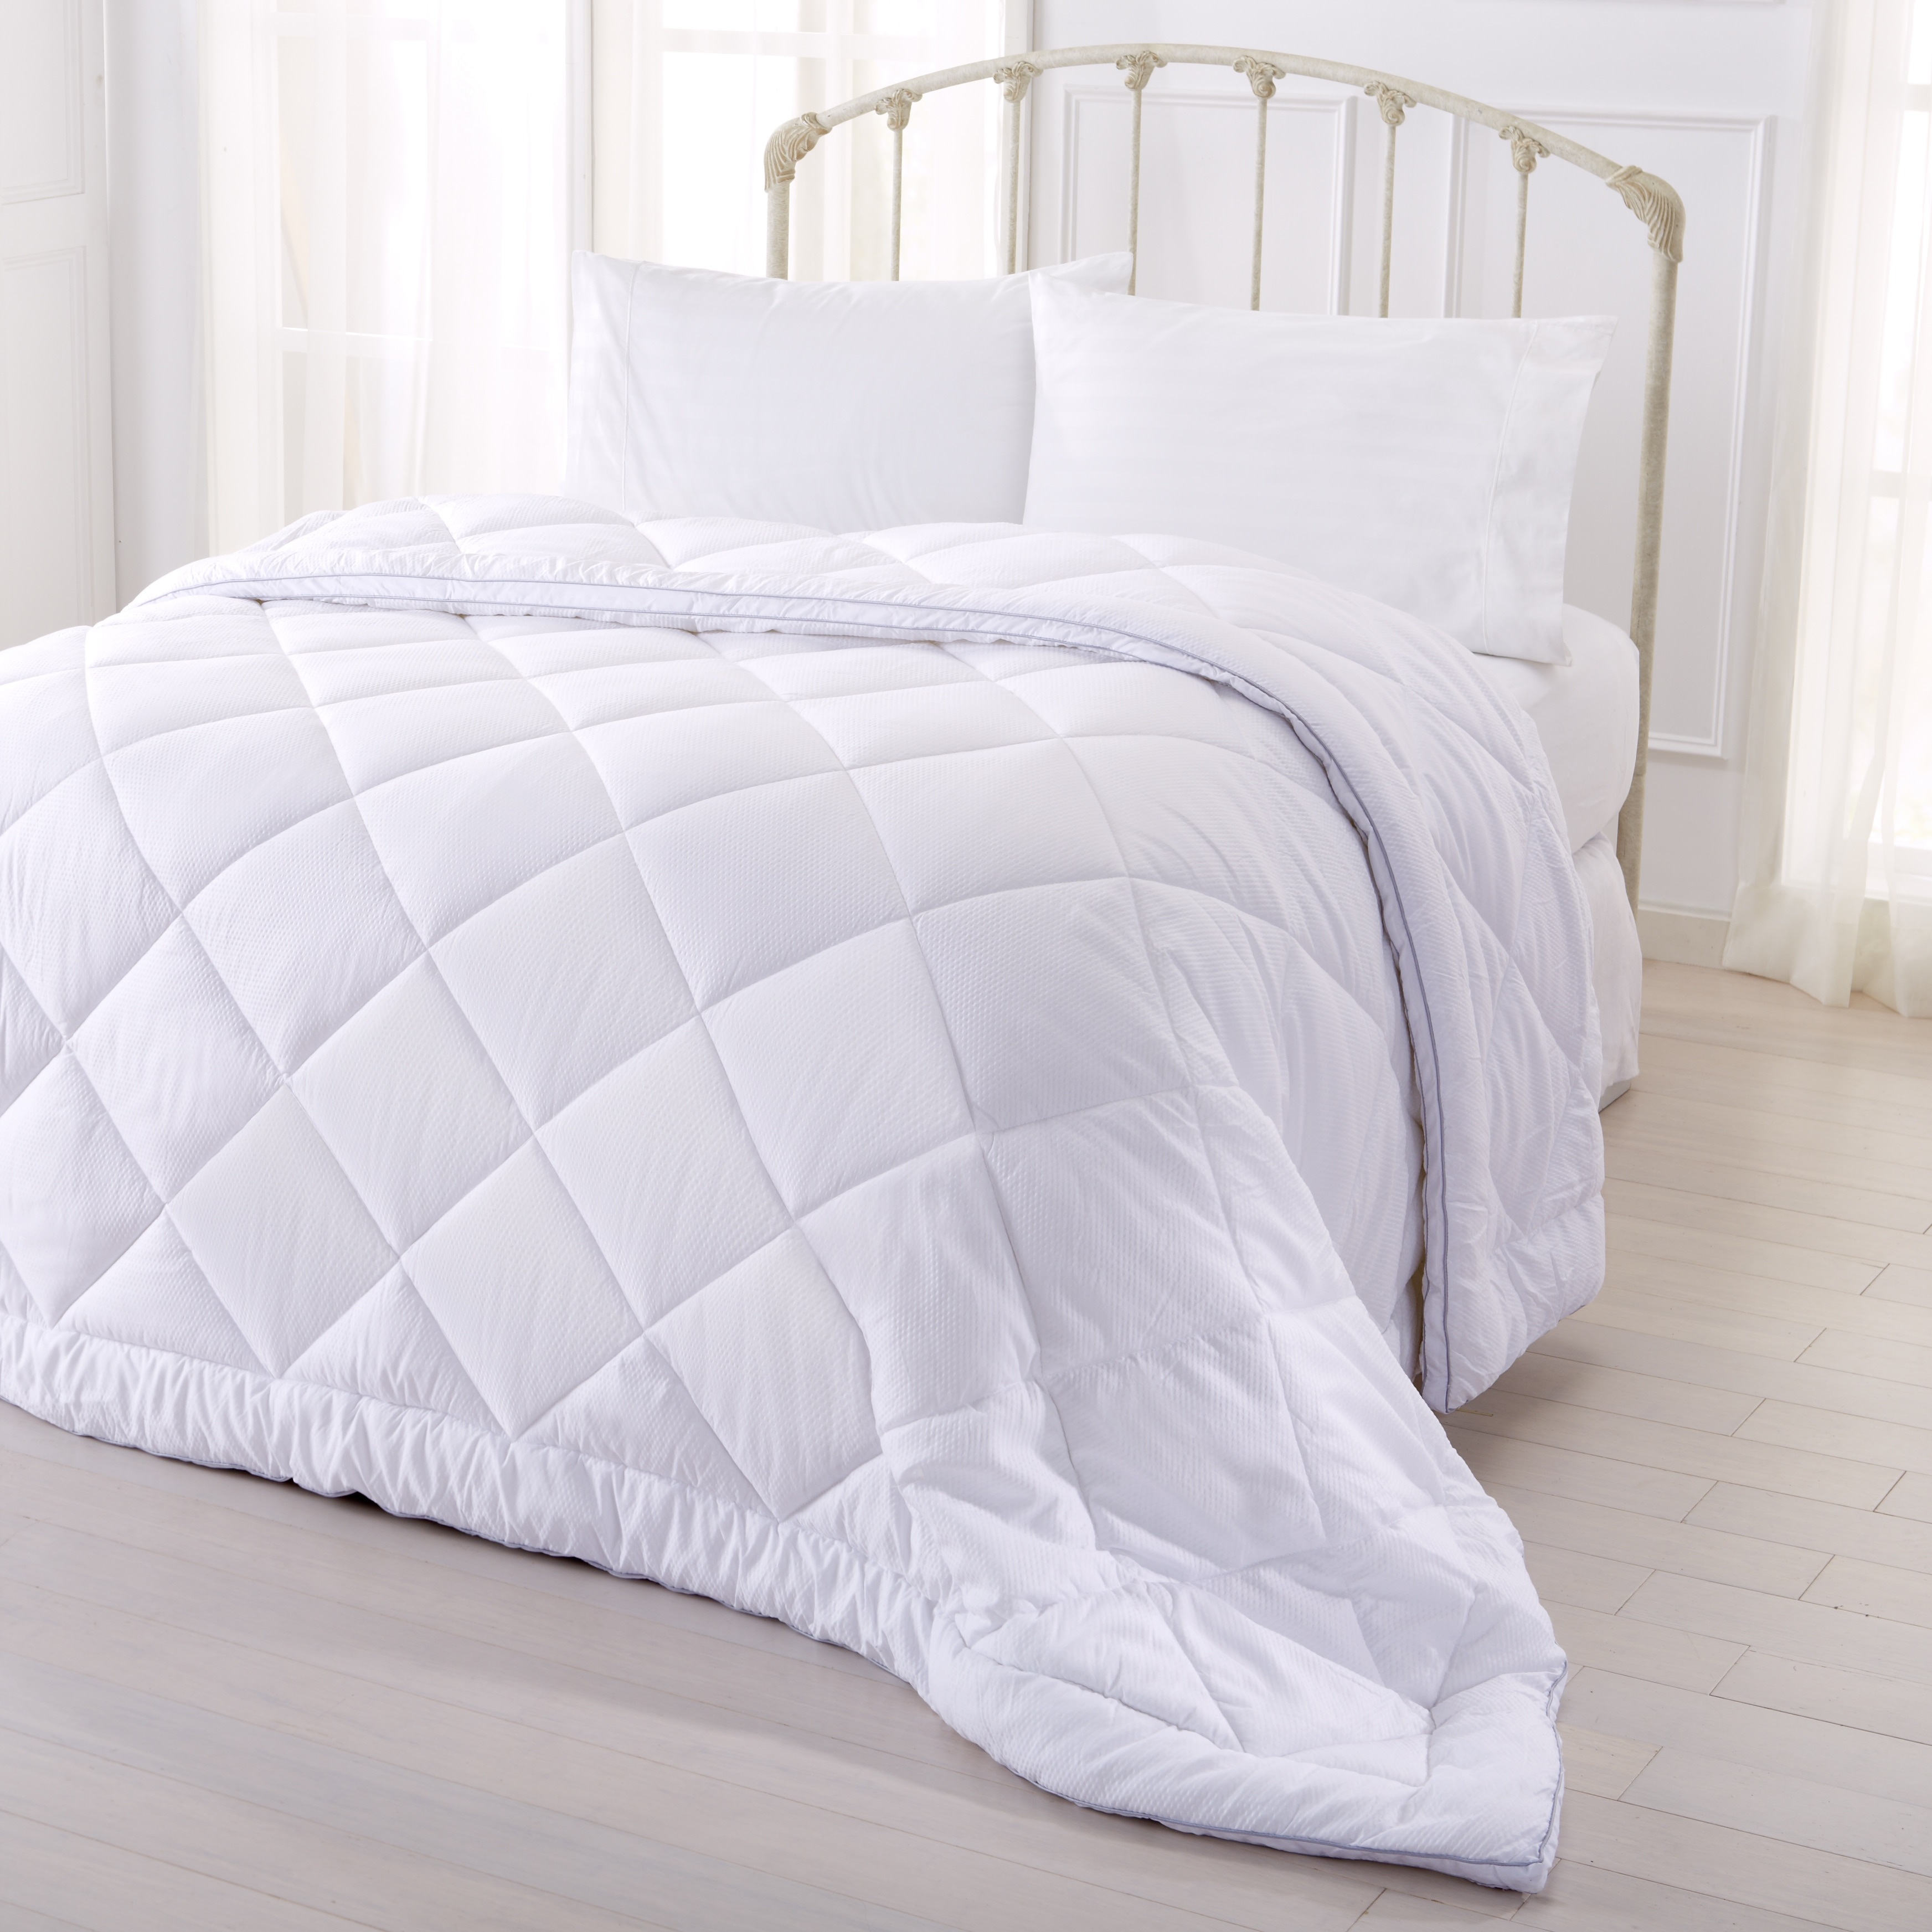 premier product microfiber shipping over down orders on free osleep bedding season all bath comforter reviews overstock alternative